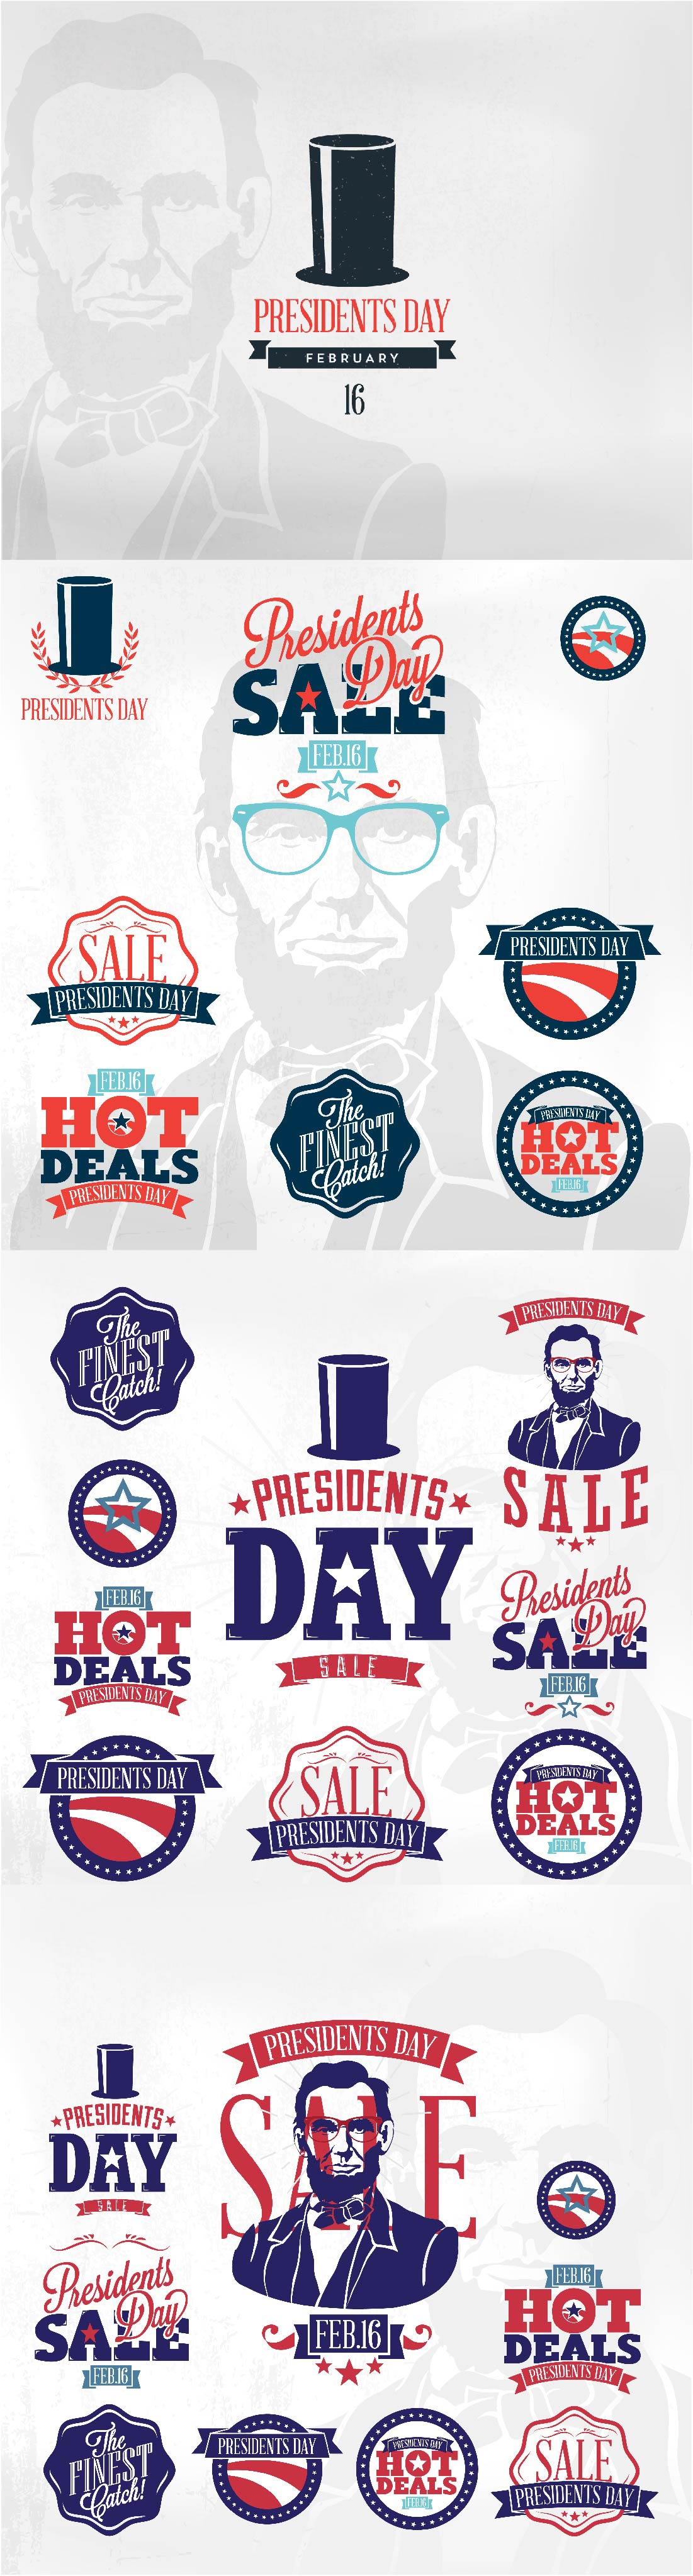 500+ Premium Vectors Collection 17